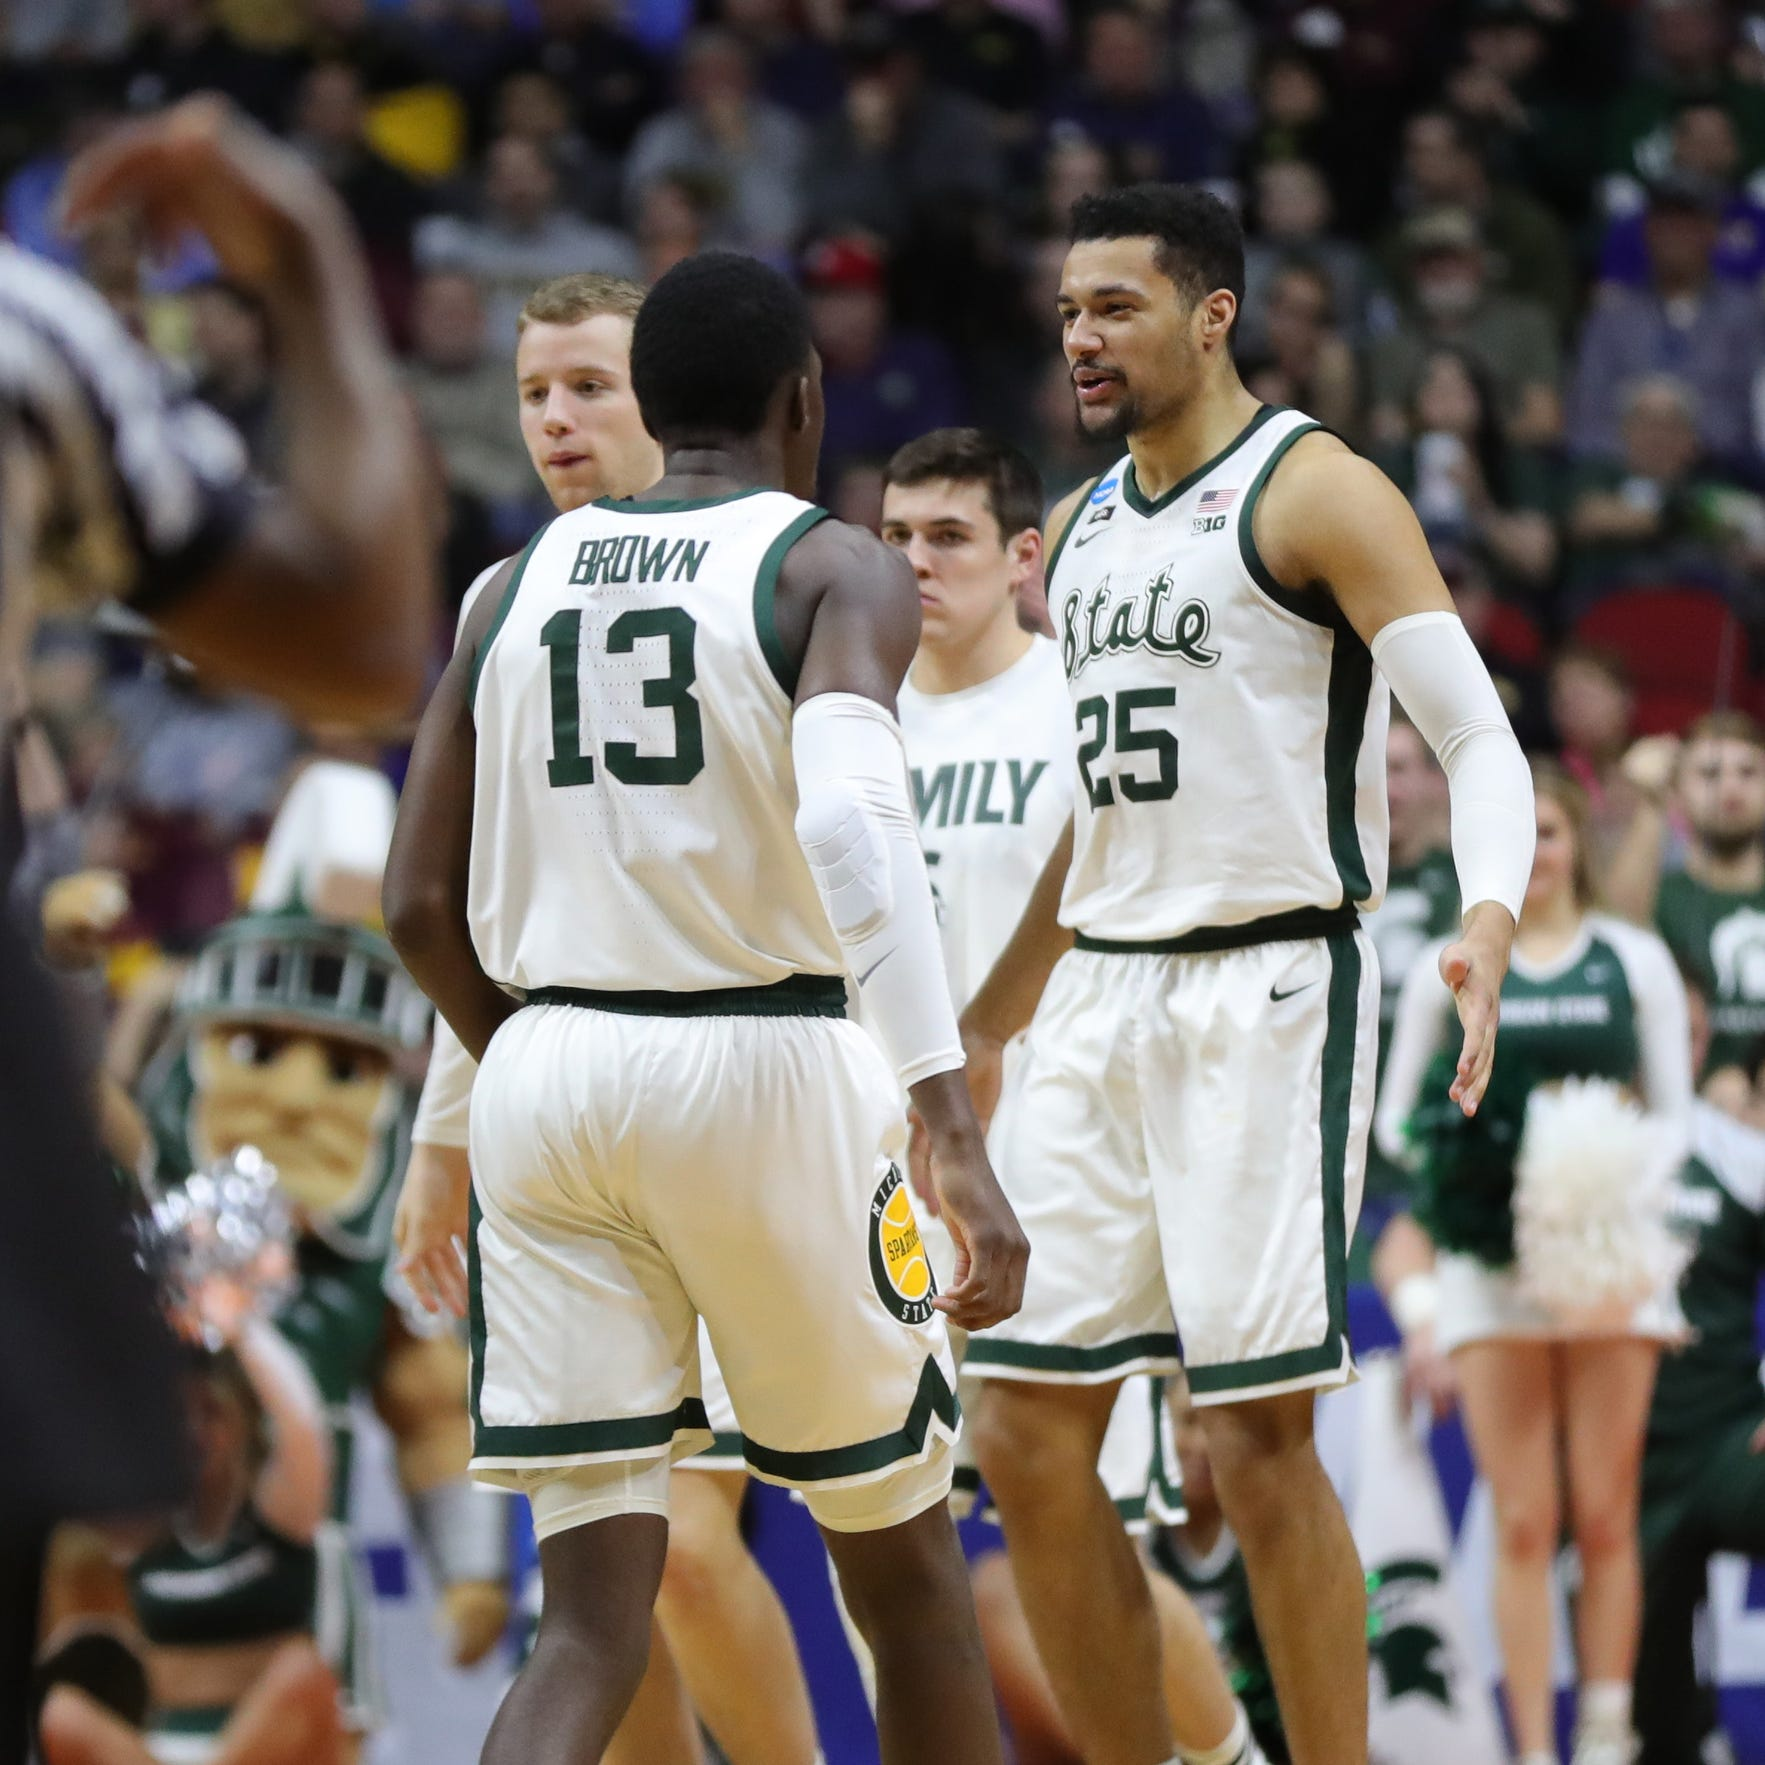 Michigan State vs. LSU in NCAA tournament: Scouting report, prediction